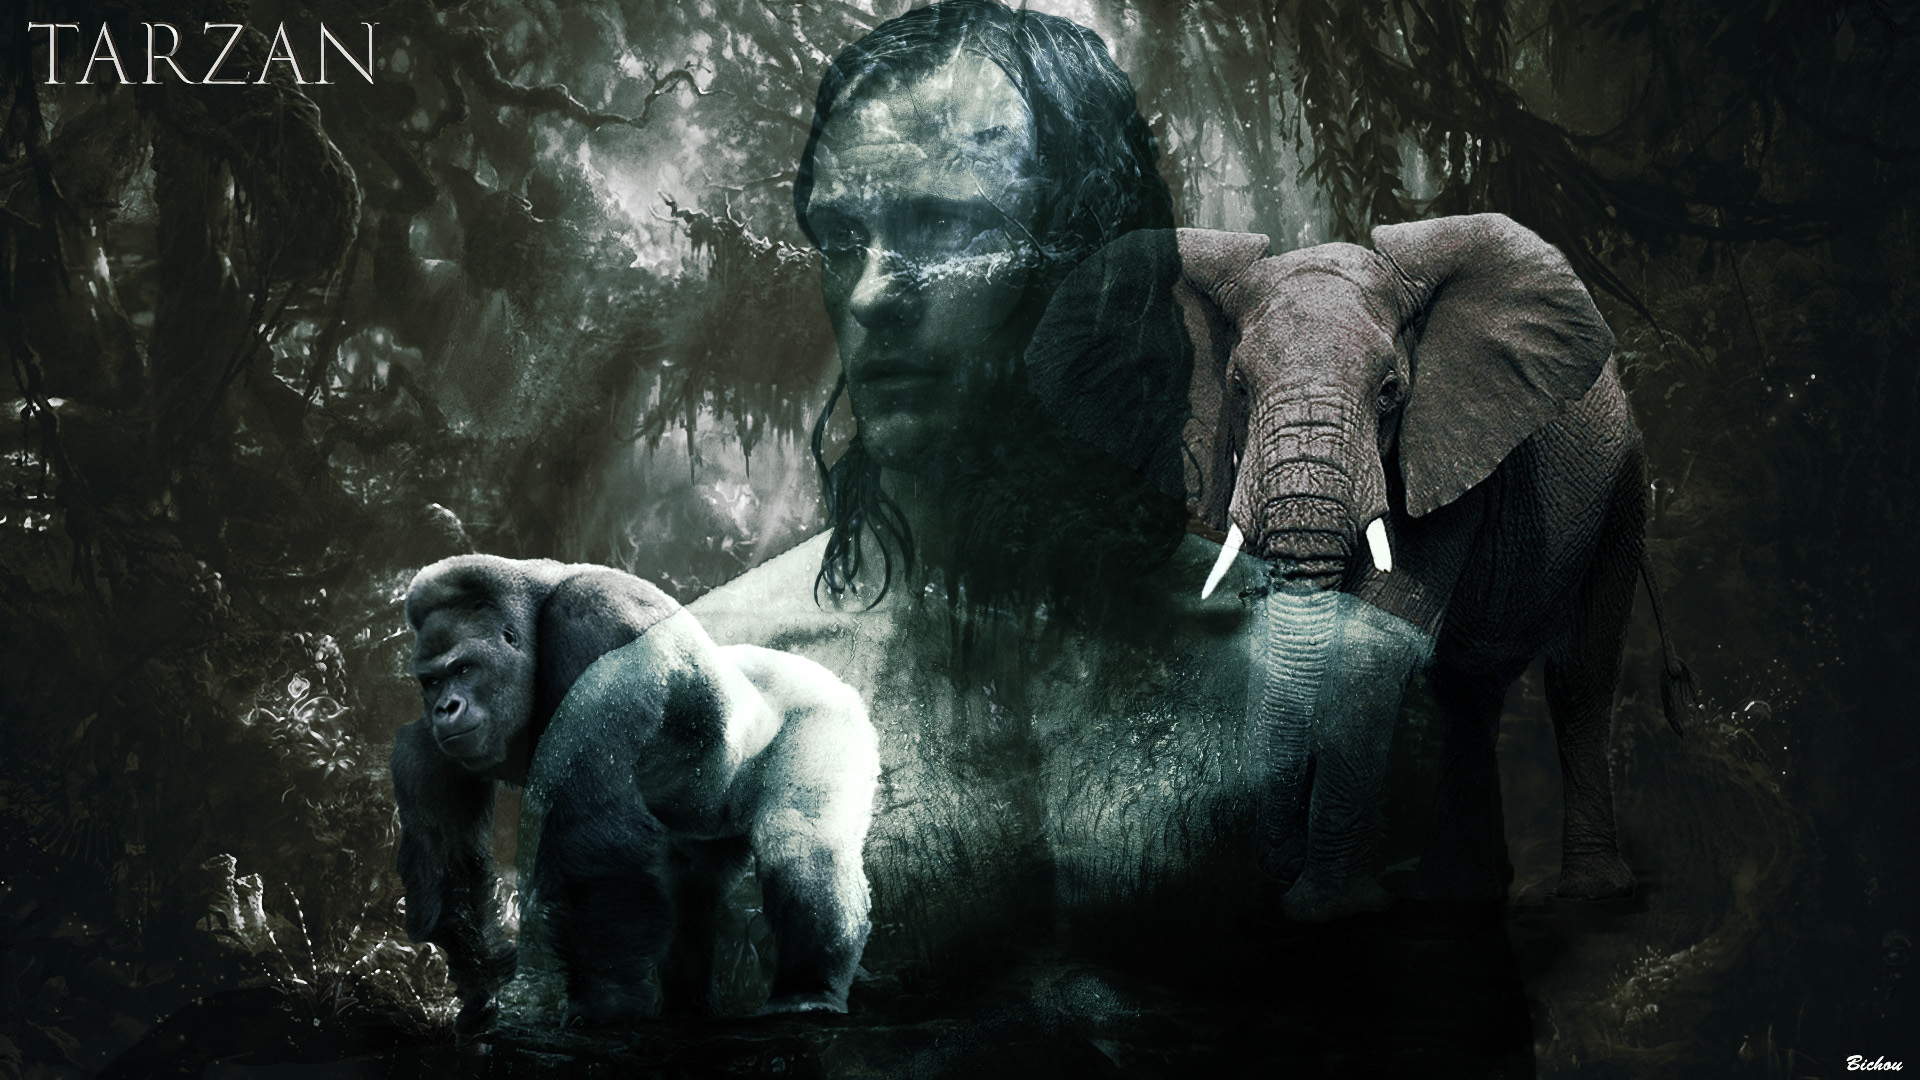 The legend of tarzan hd wallpaper background image - Tarzan wallpaper ...